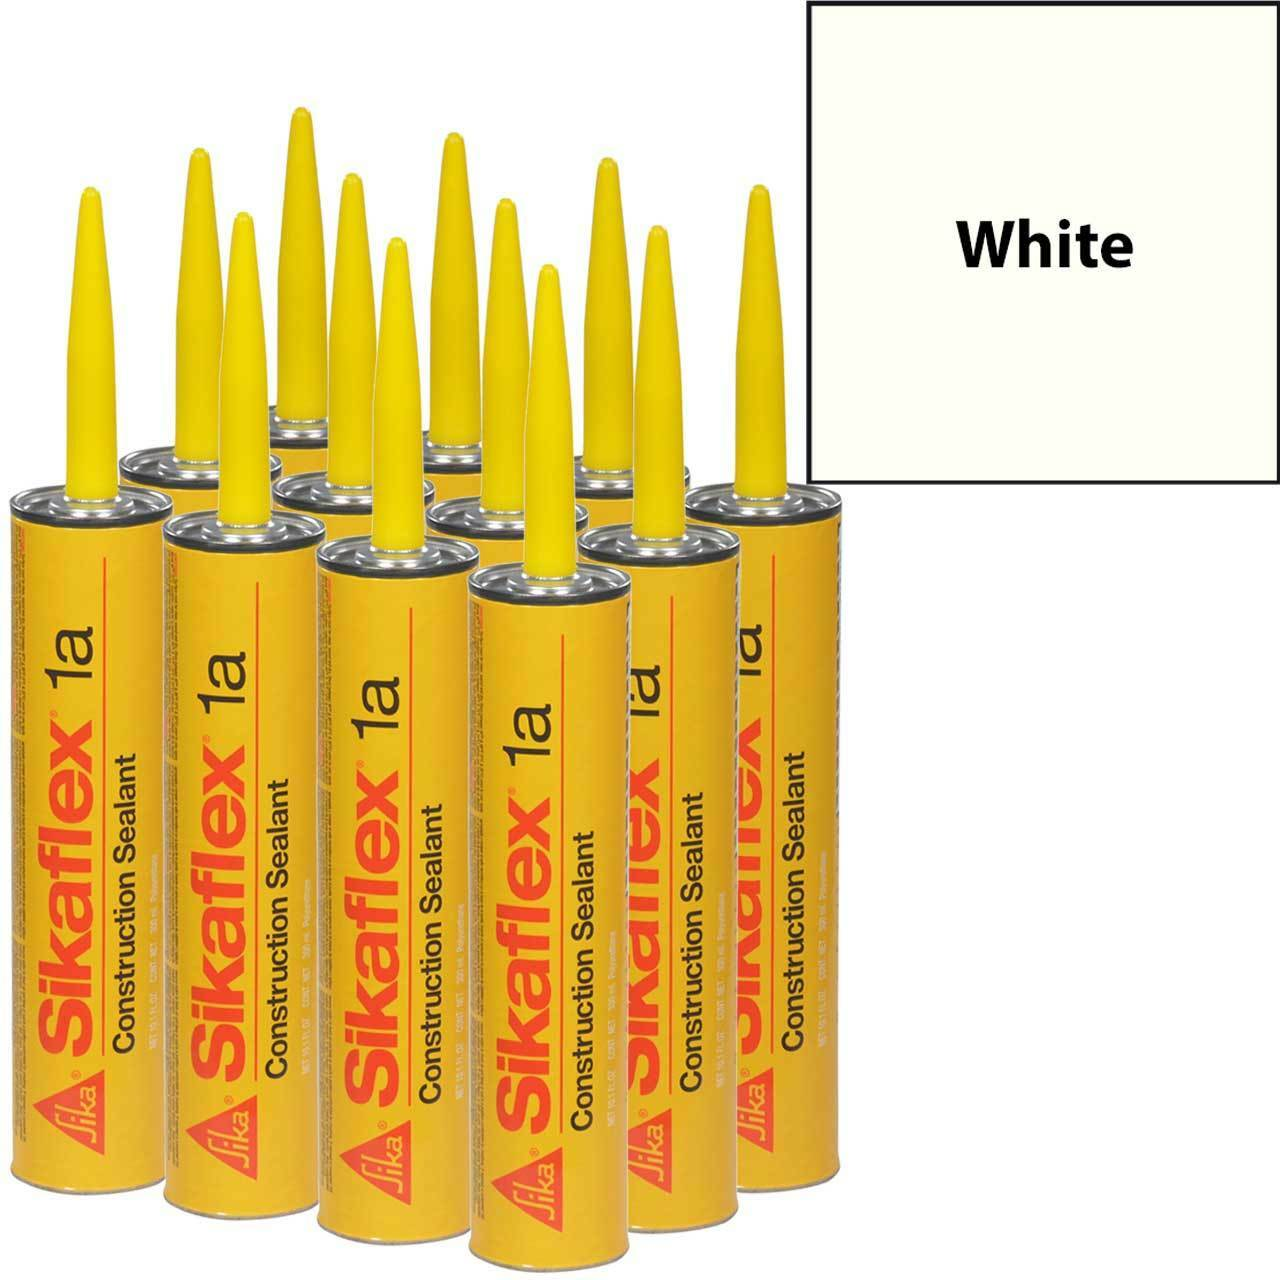 Sikaflex 15lm Low Modulus Polyurethane Sealant 10 1 FL Oz Cartridge White  Case of 24